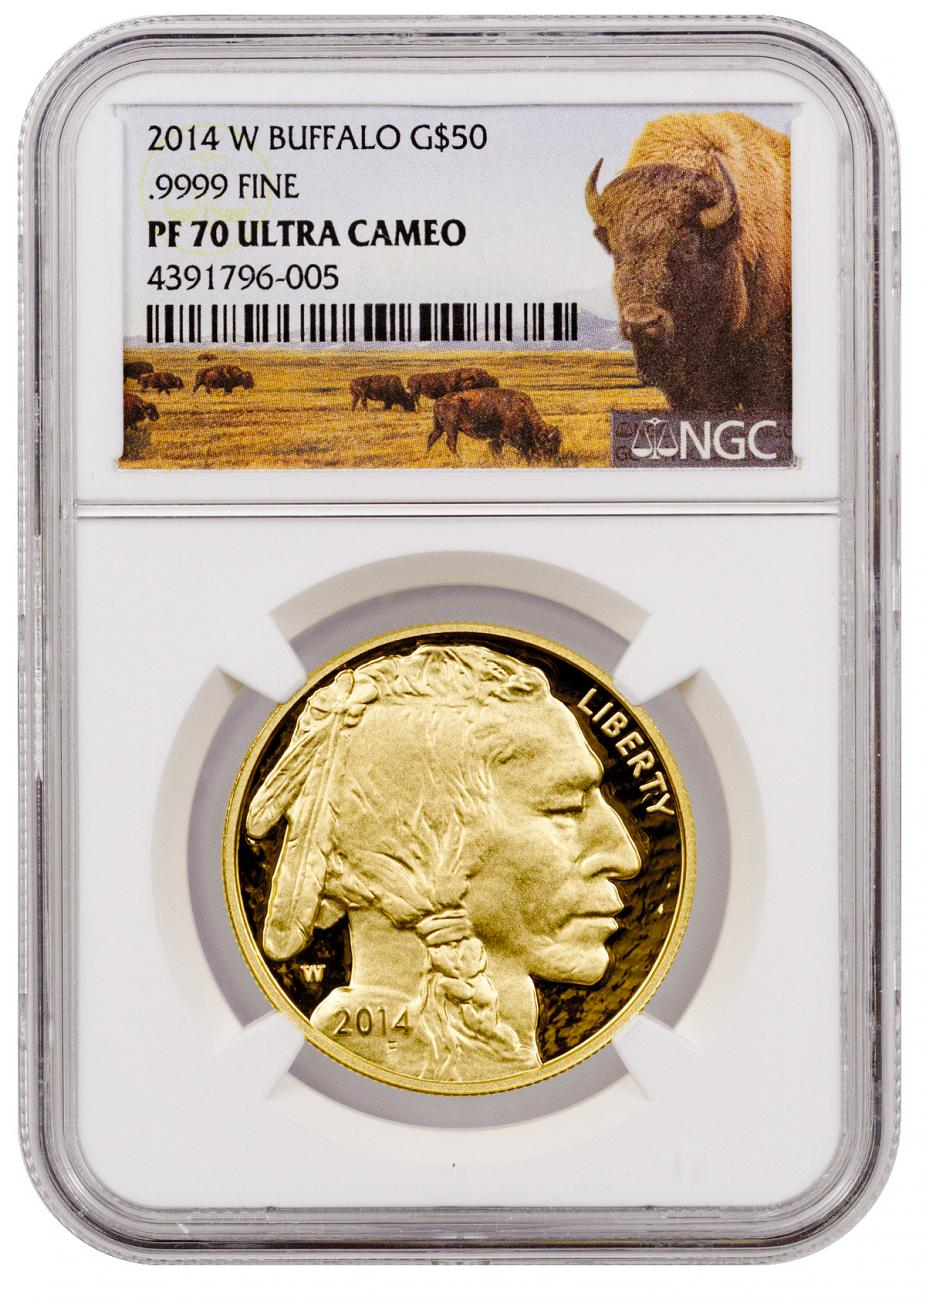 2014-W 1 oz Gold Buffalo Proof $50 NGC PF70 UC (Buffalo Label)